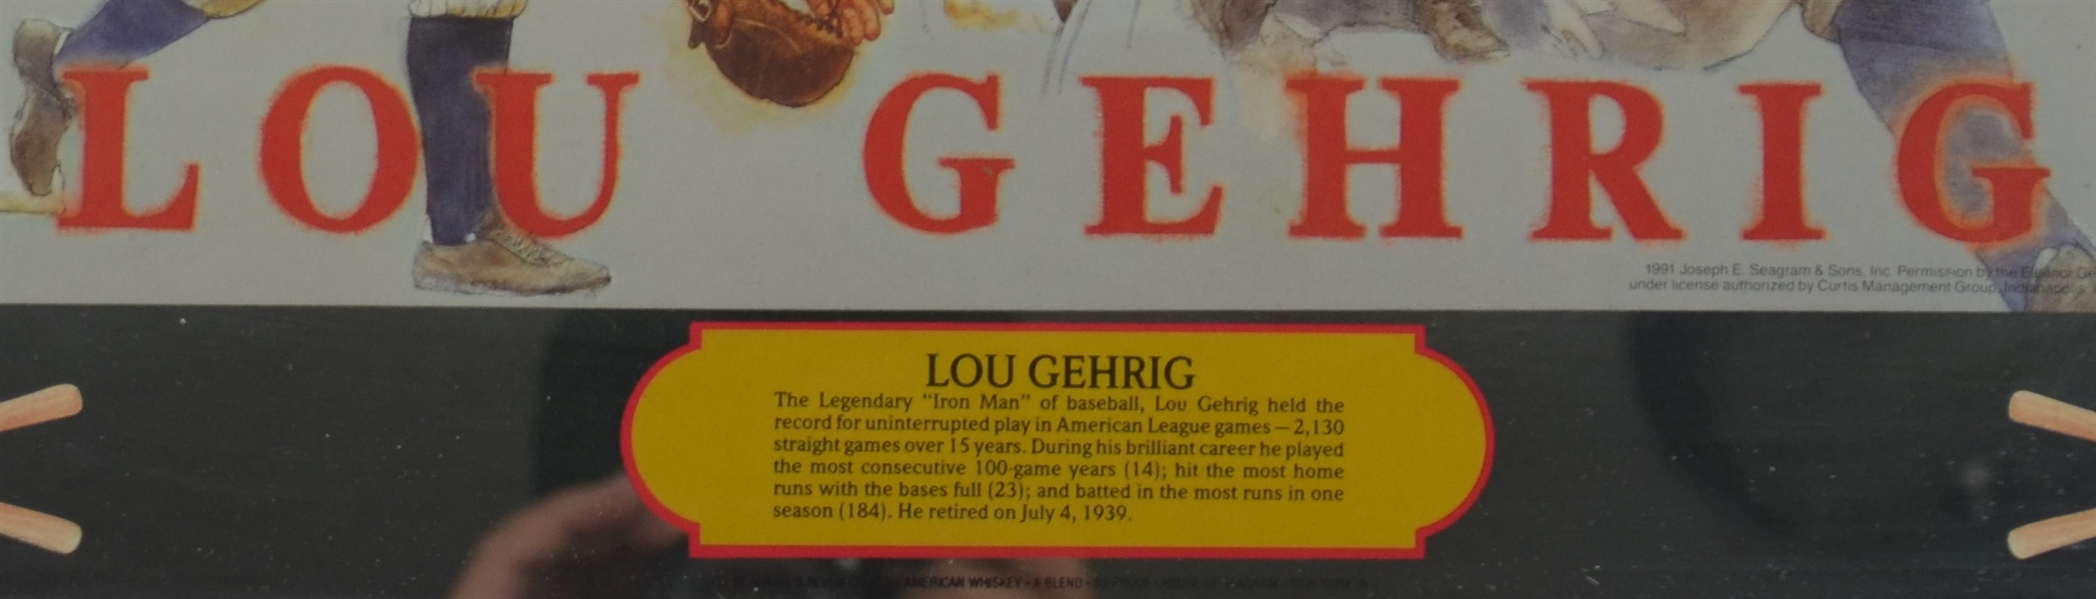 Lou Gehrig Seagram's Mirror Display